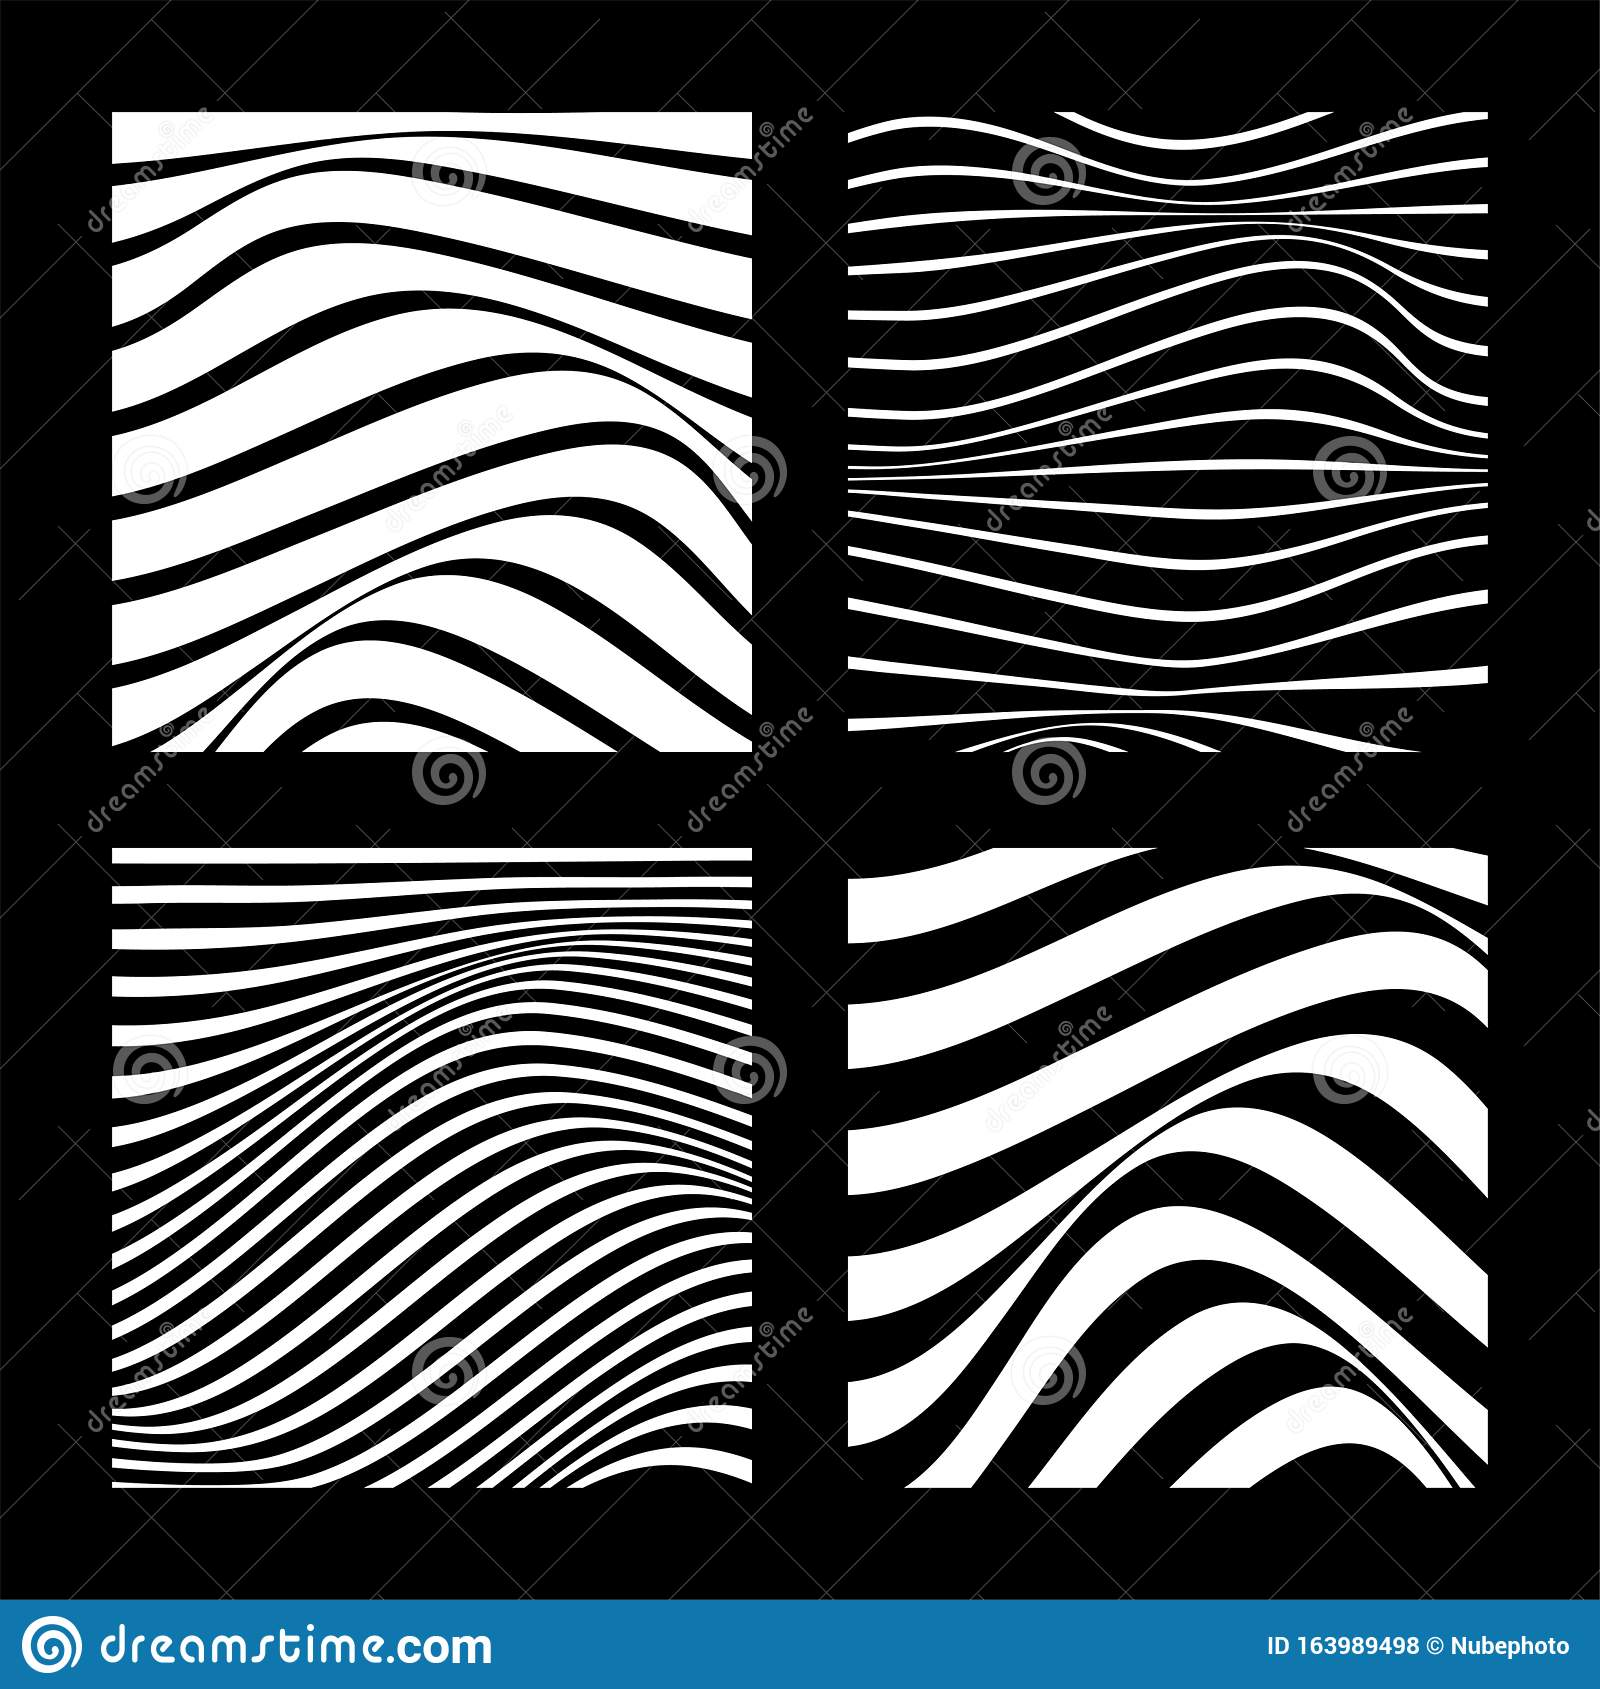 Set Of 4 Abstract Backgrounds With Wavy Lines. Minimalist